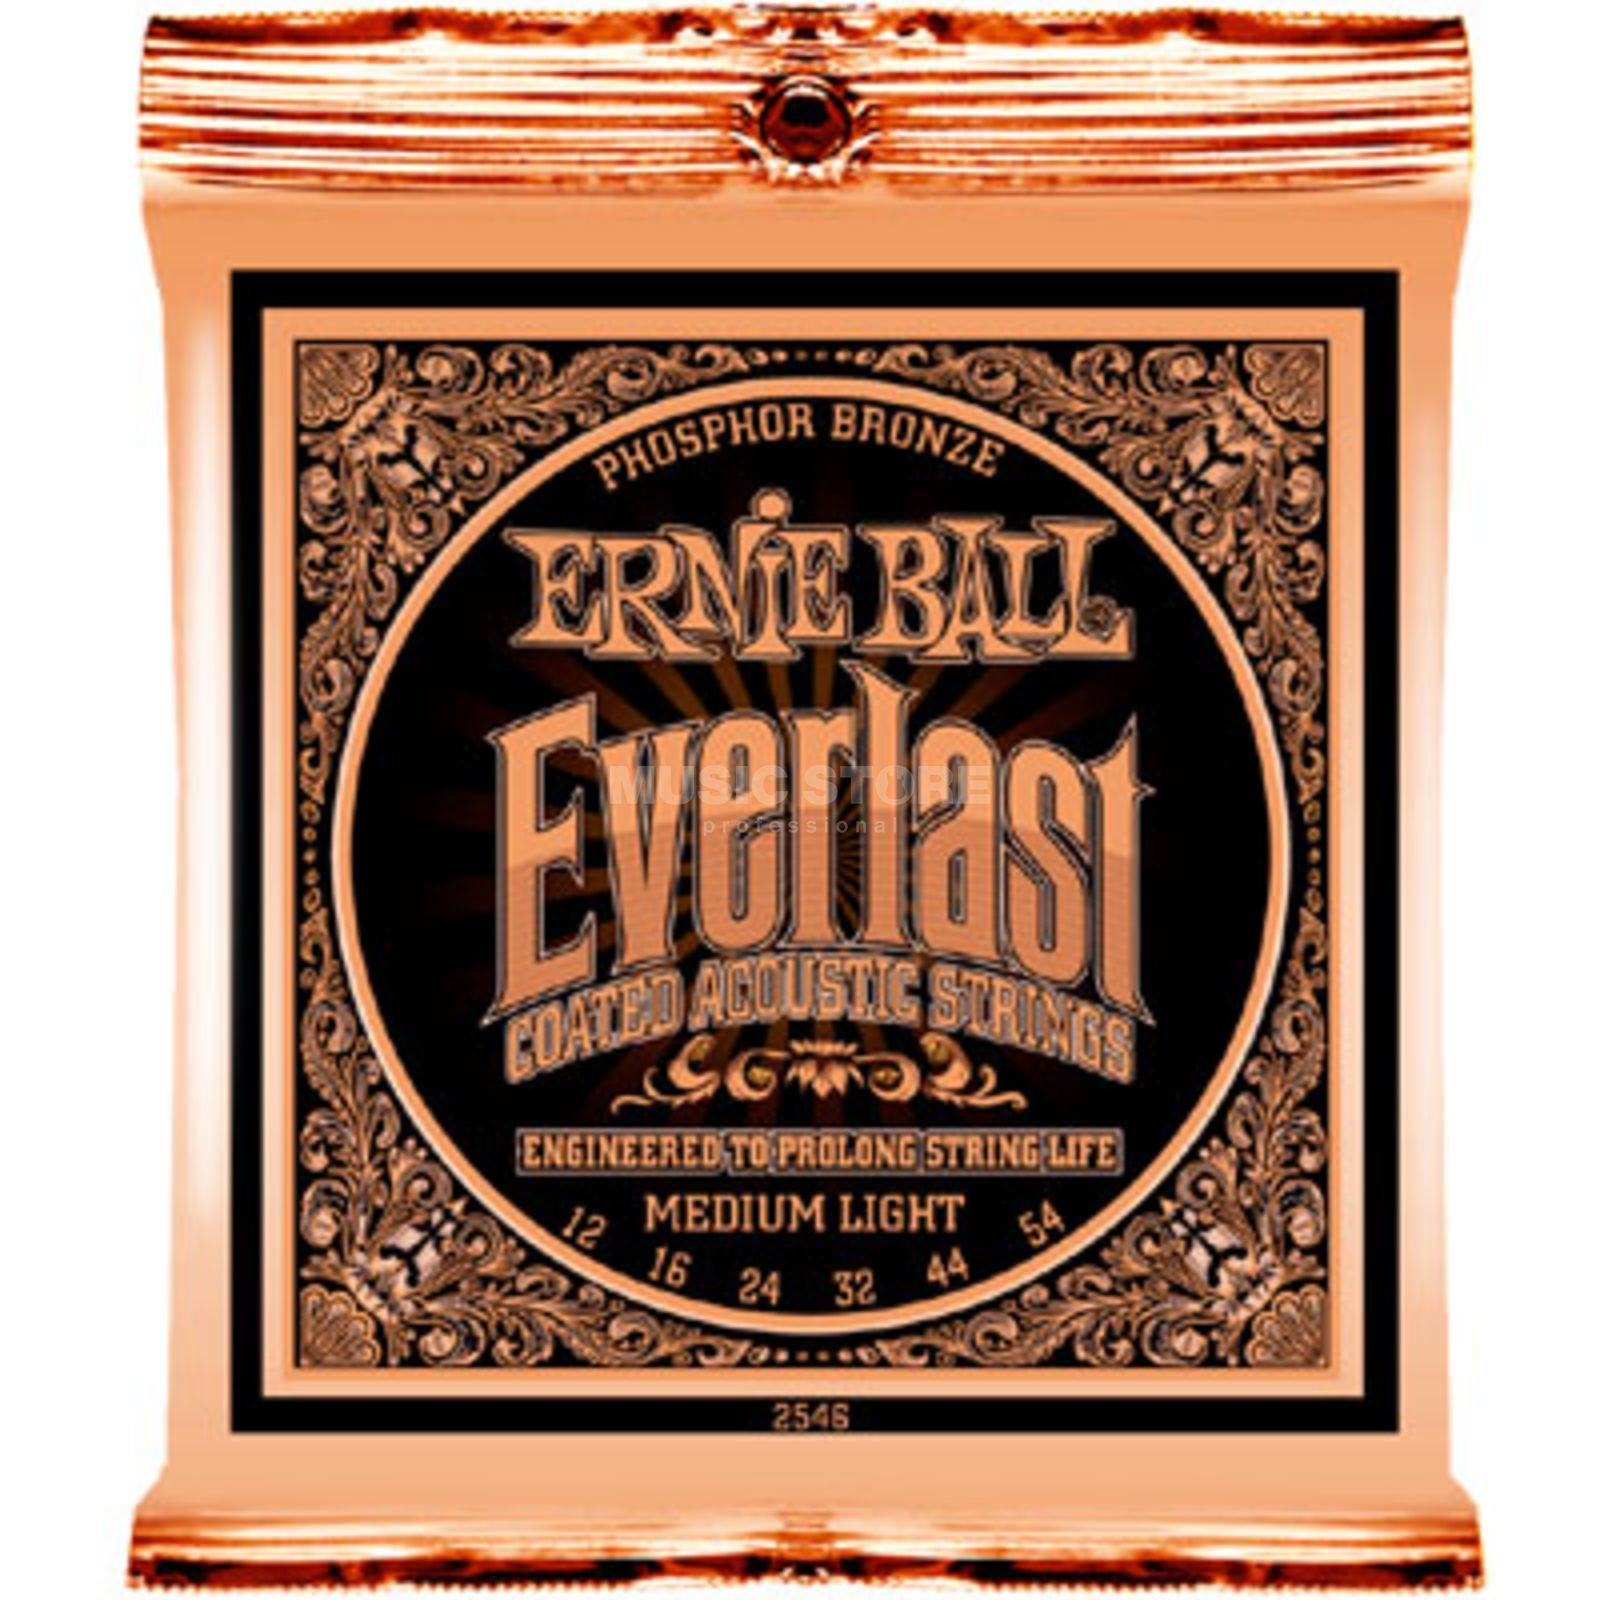 Ernie Ball A-Guit. Strings 12-54 Everlast Phosphor Bronze, EB2546 Produktbillede